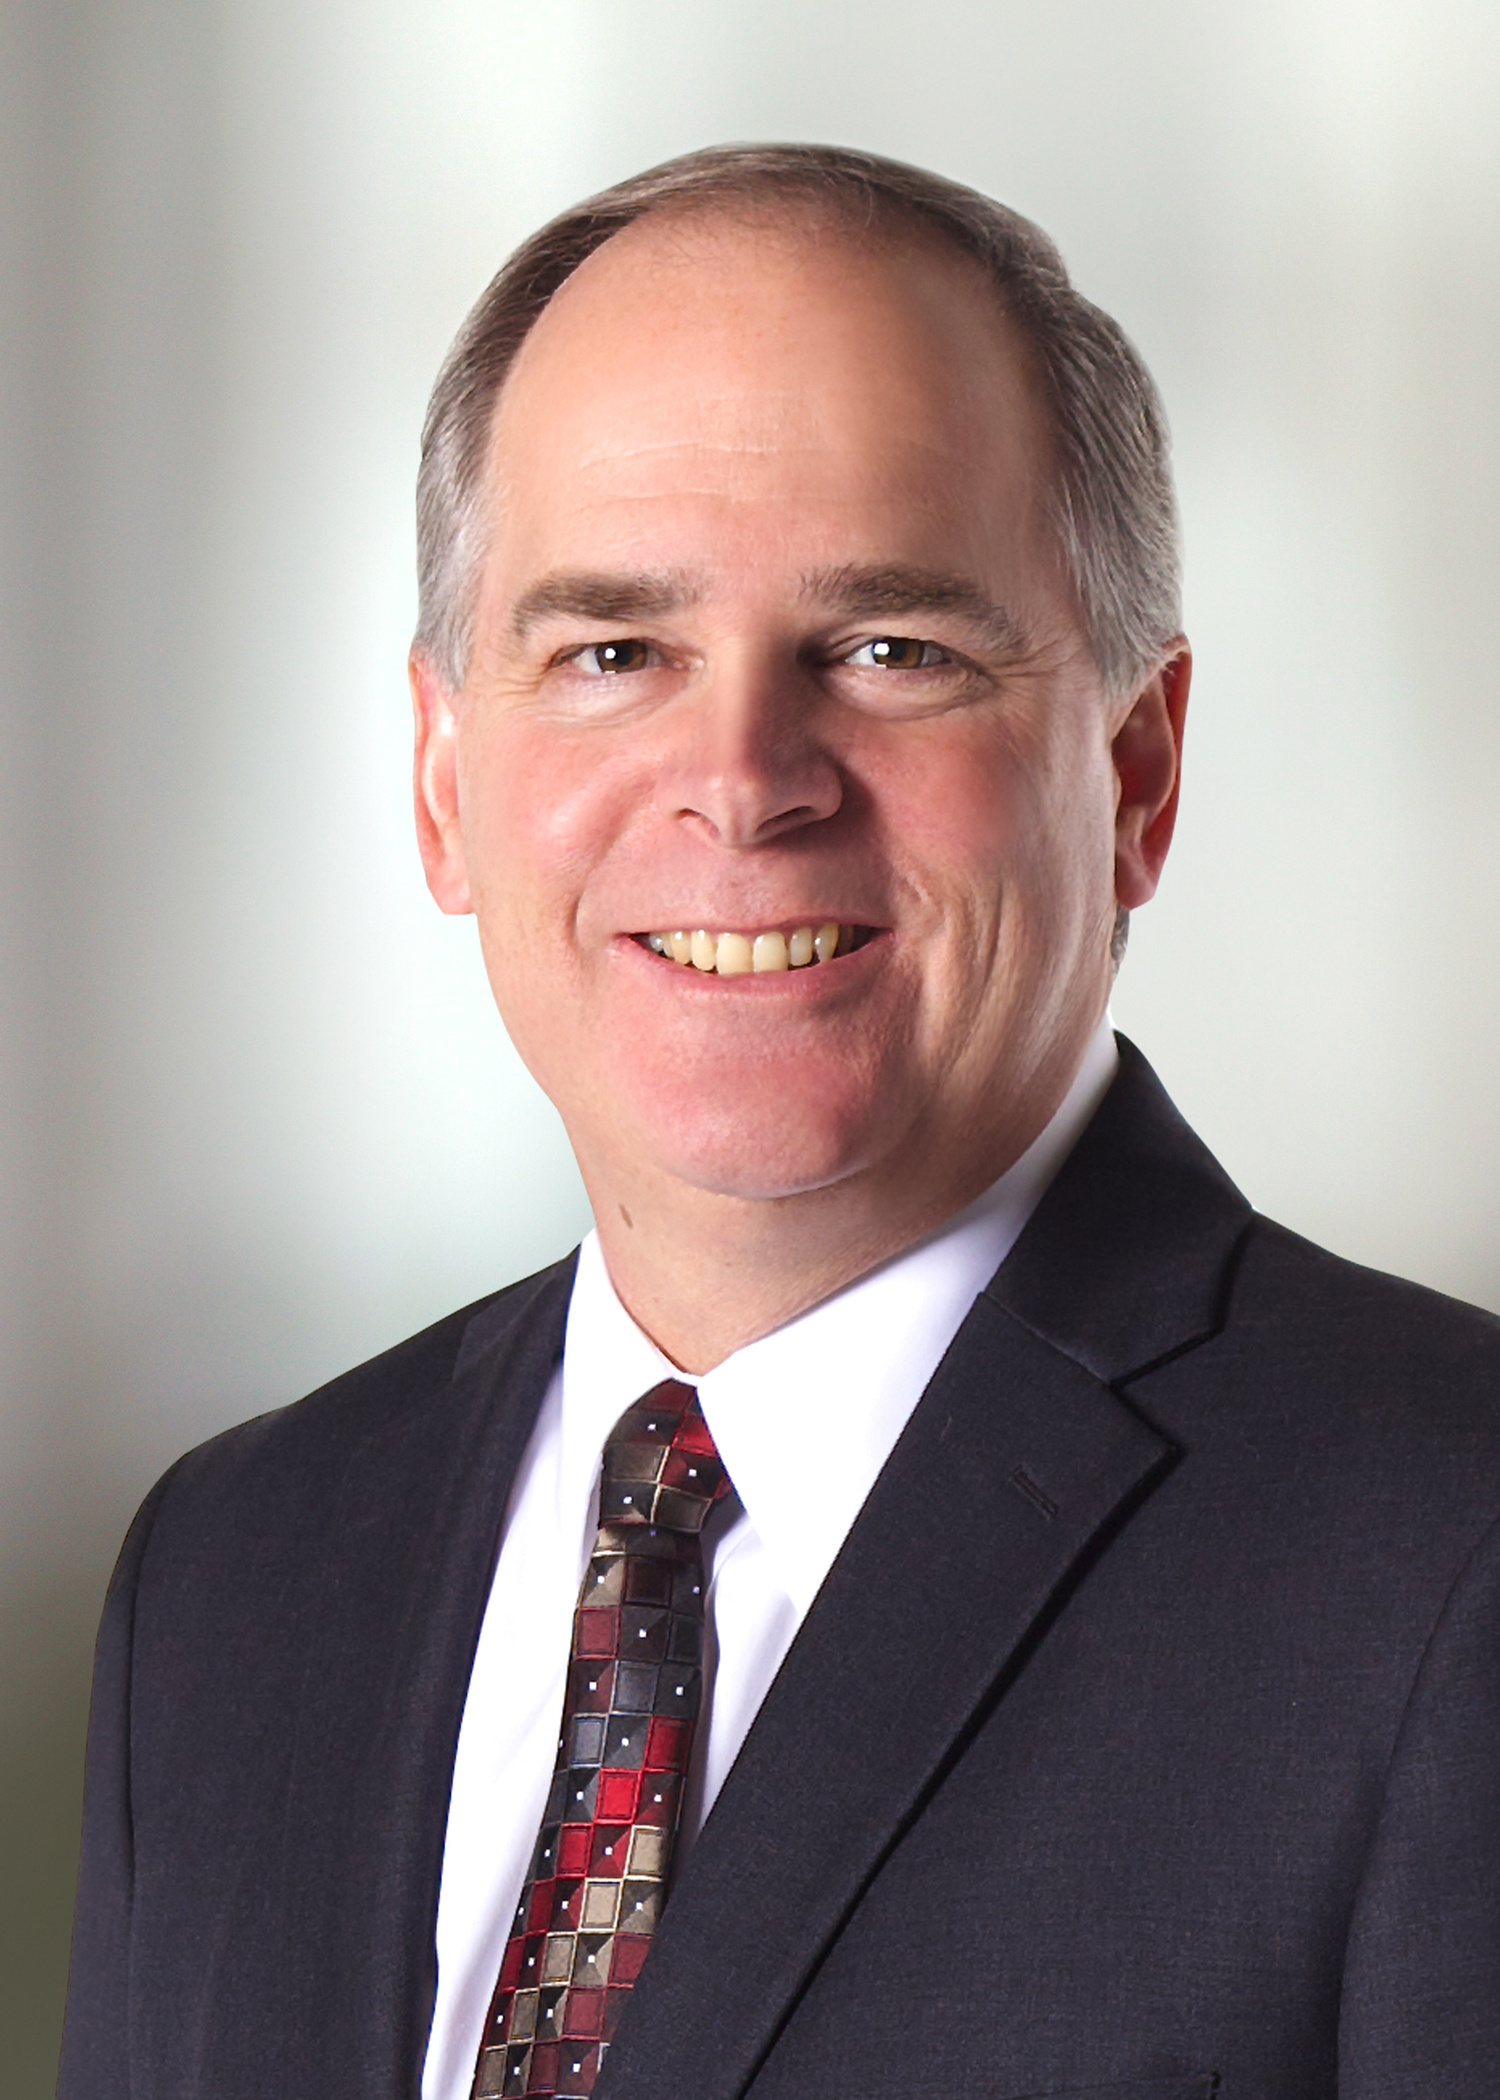 Nick Akins is chairman, president and chief executive officer of American Electric Power.